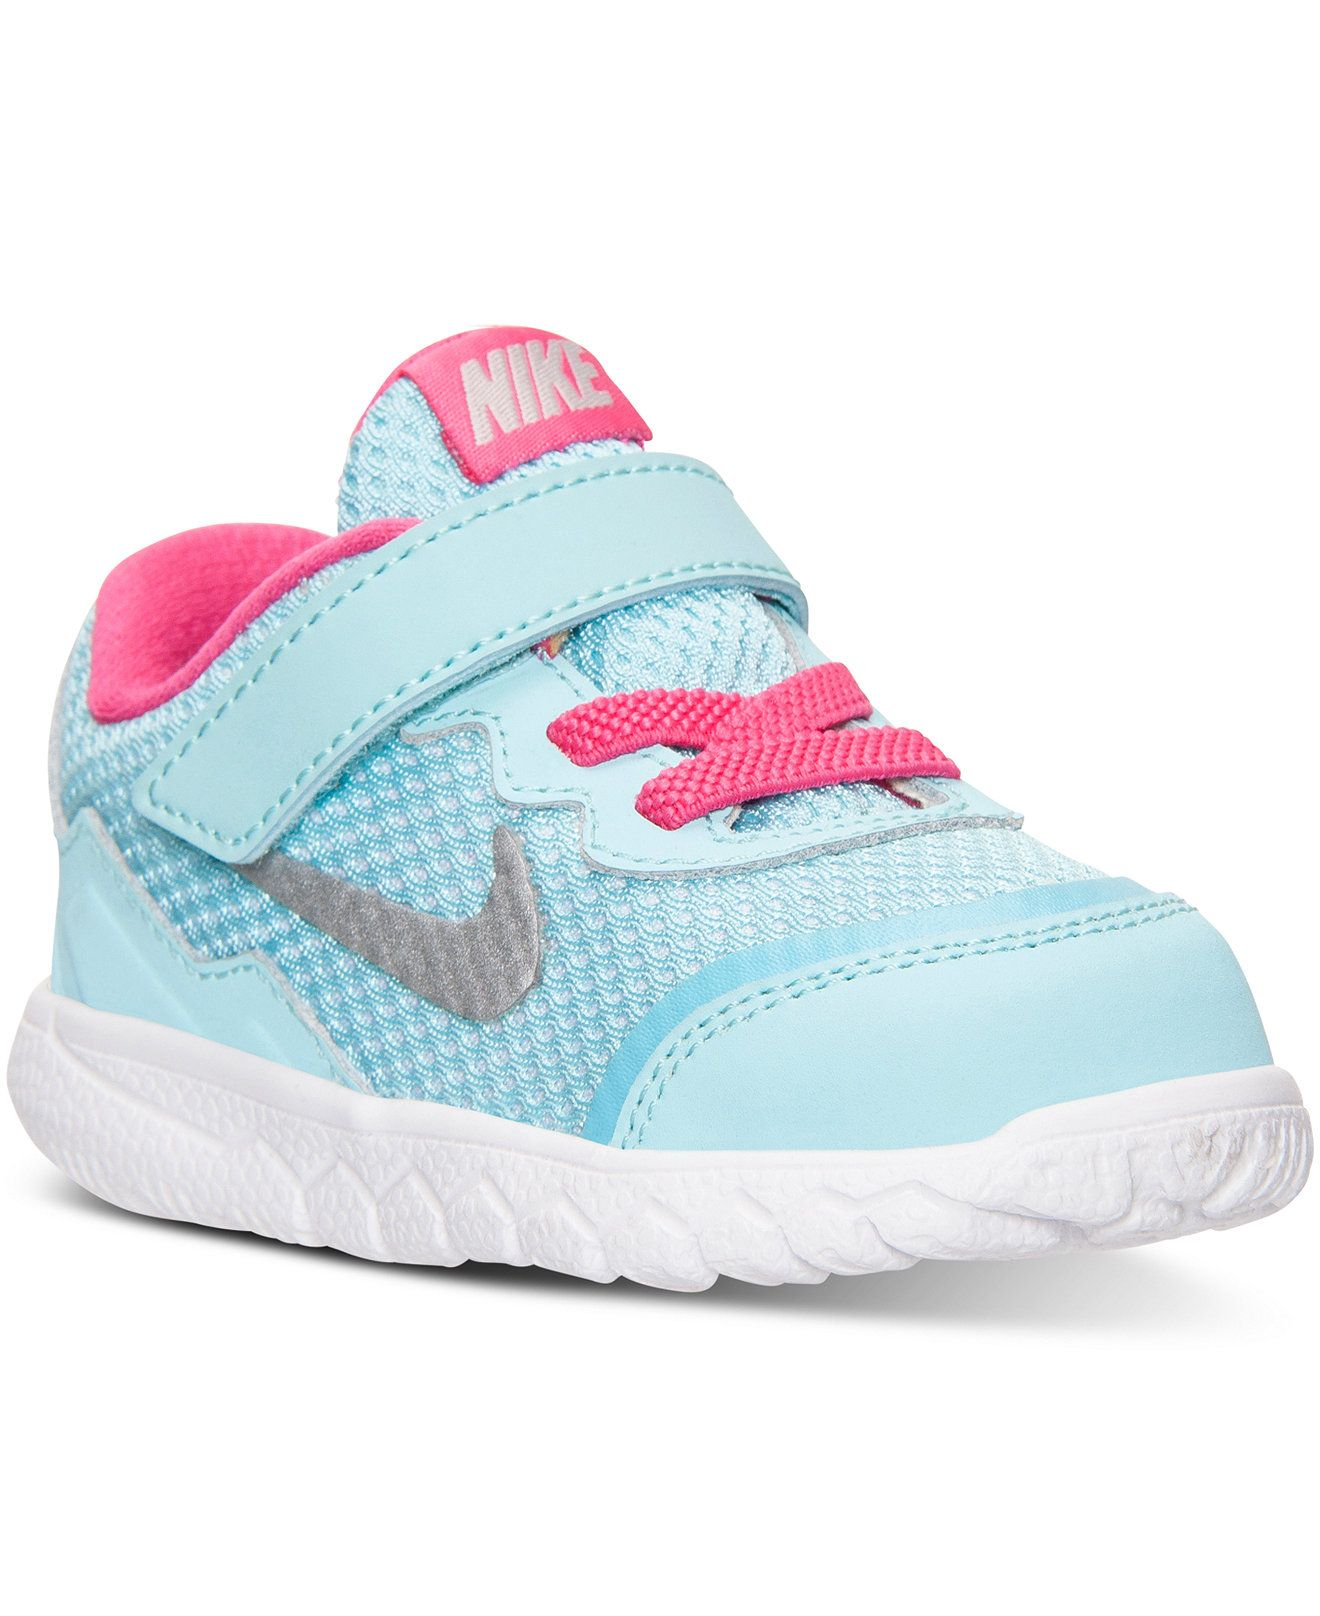 Macys baby hair accessories - Nike Toddler Girls Flex Experience 4 Running Sneakers From Finish Line Shoes Kids